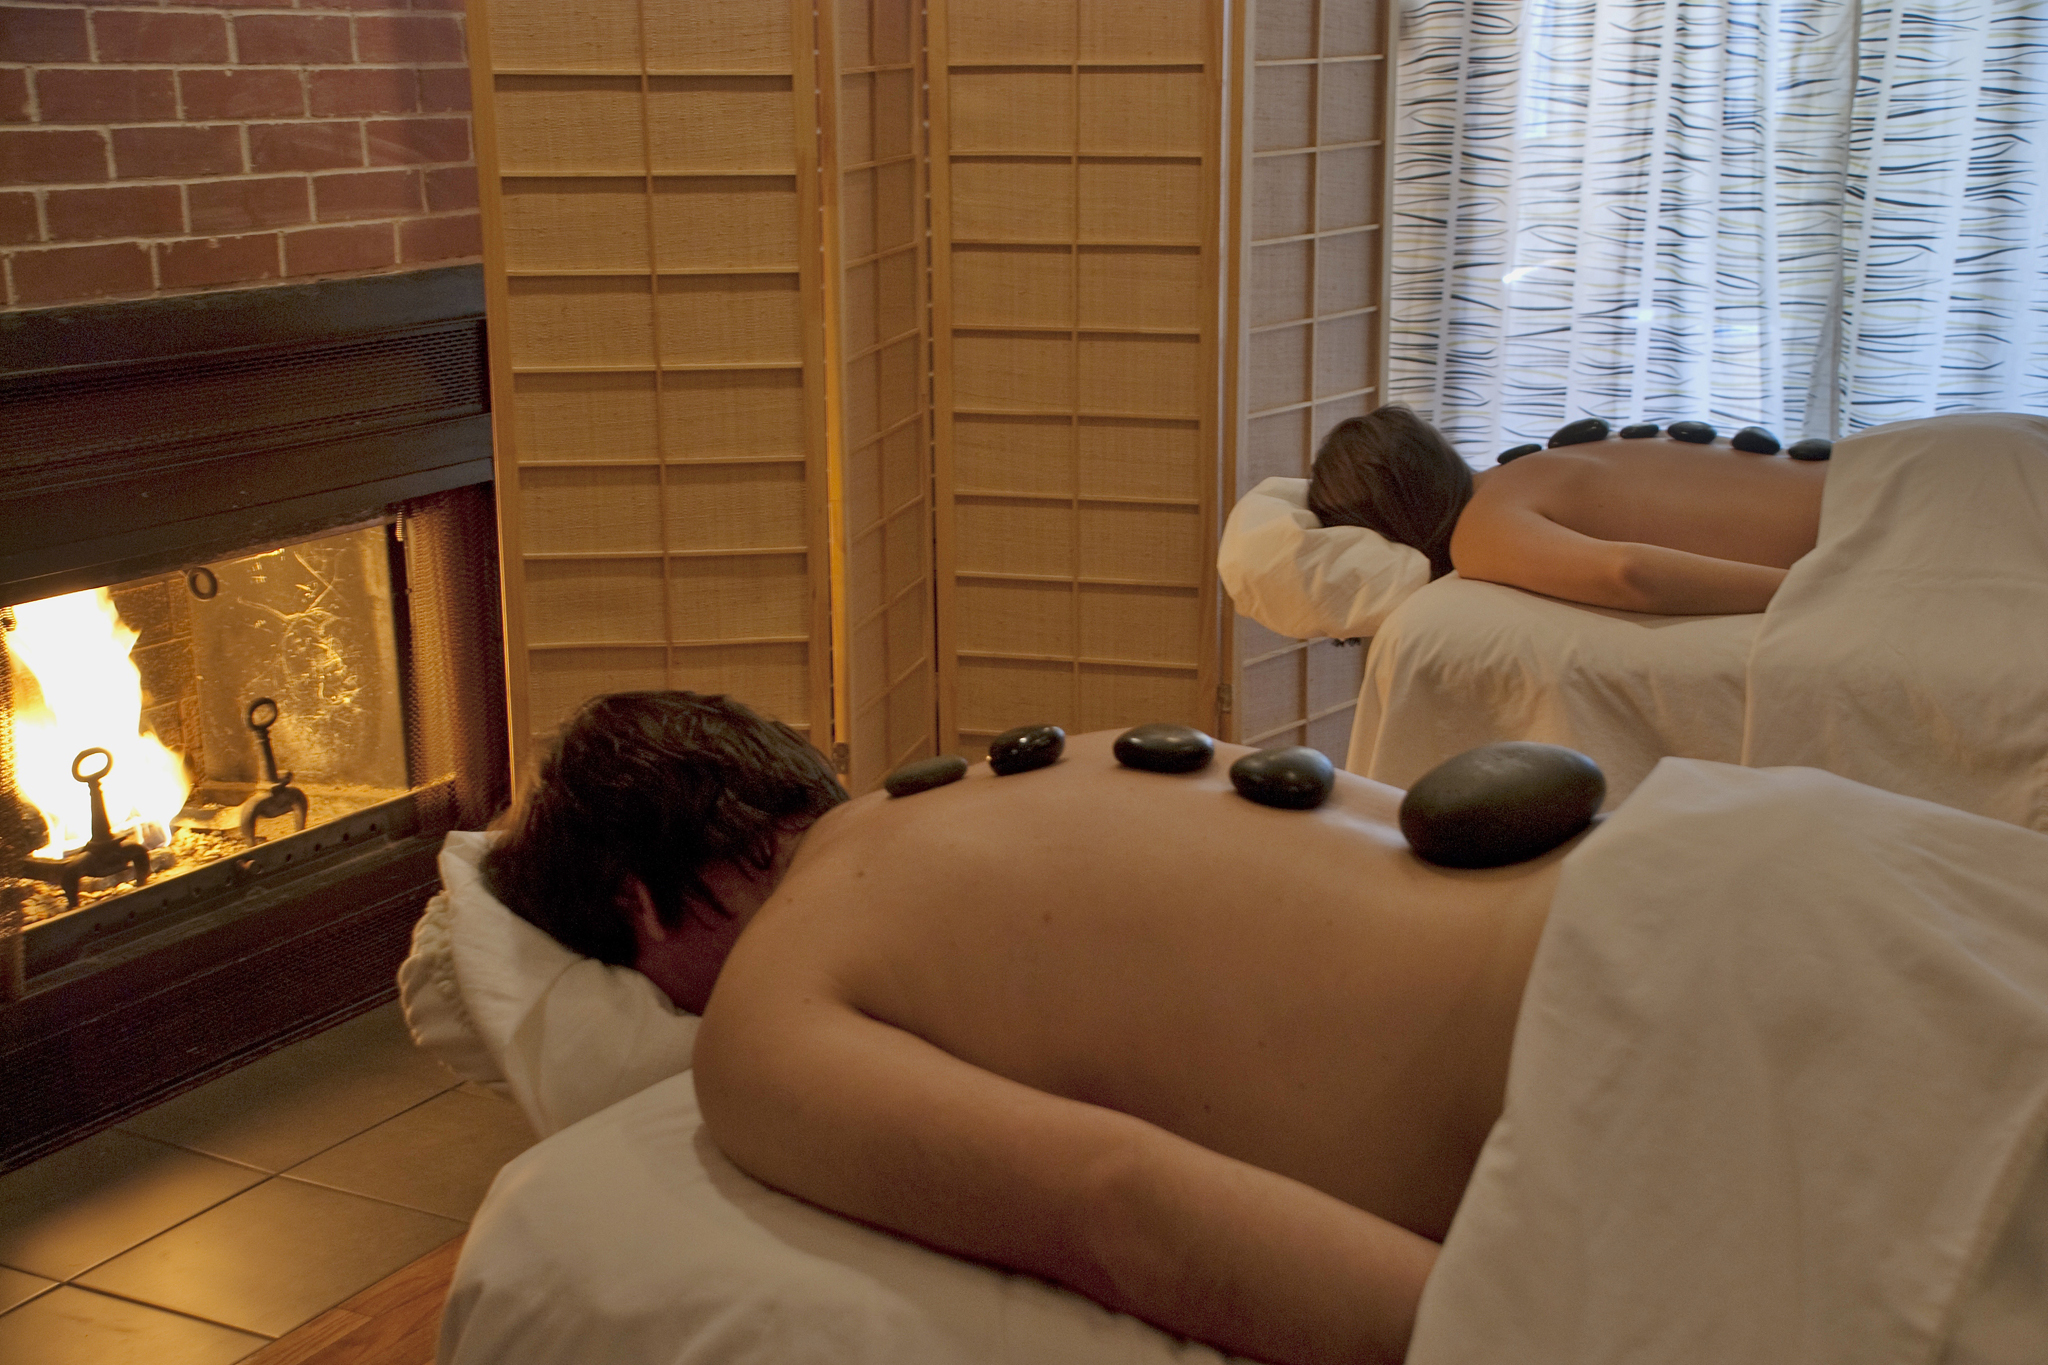 New York spas in Boerum Hill, Cobble Hill and Carroll Gardens